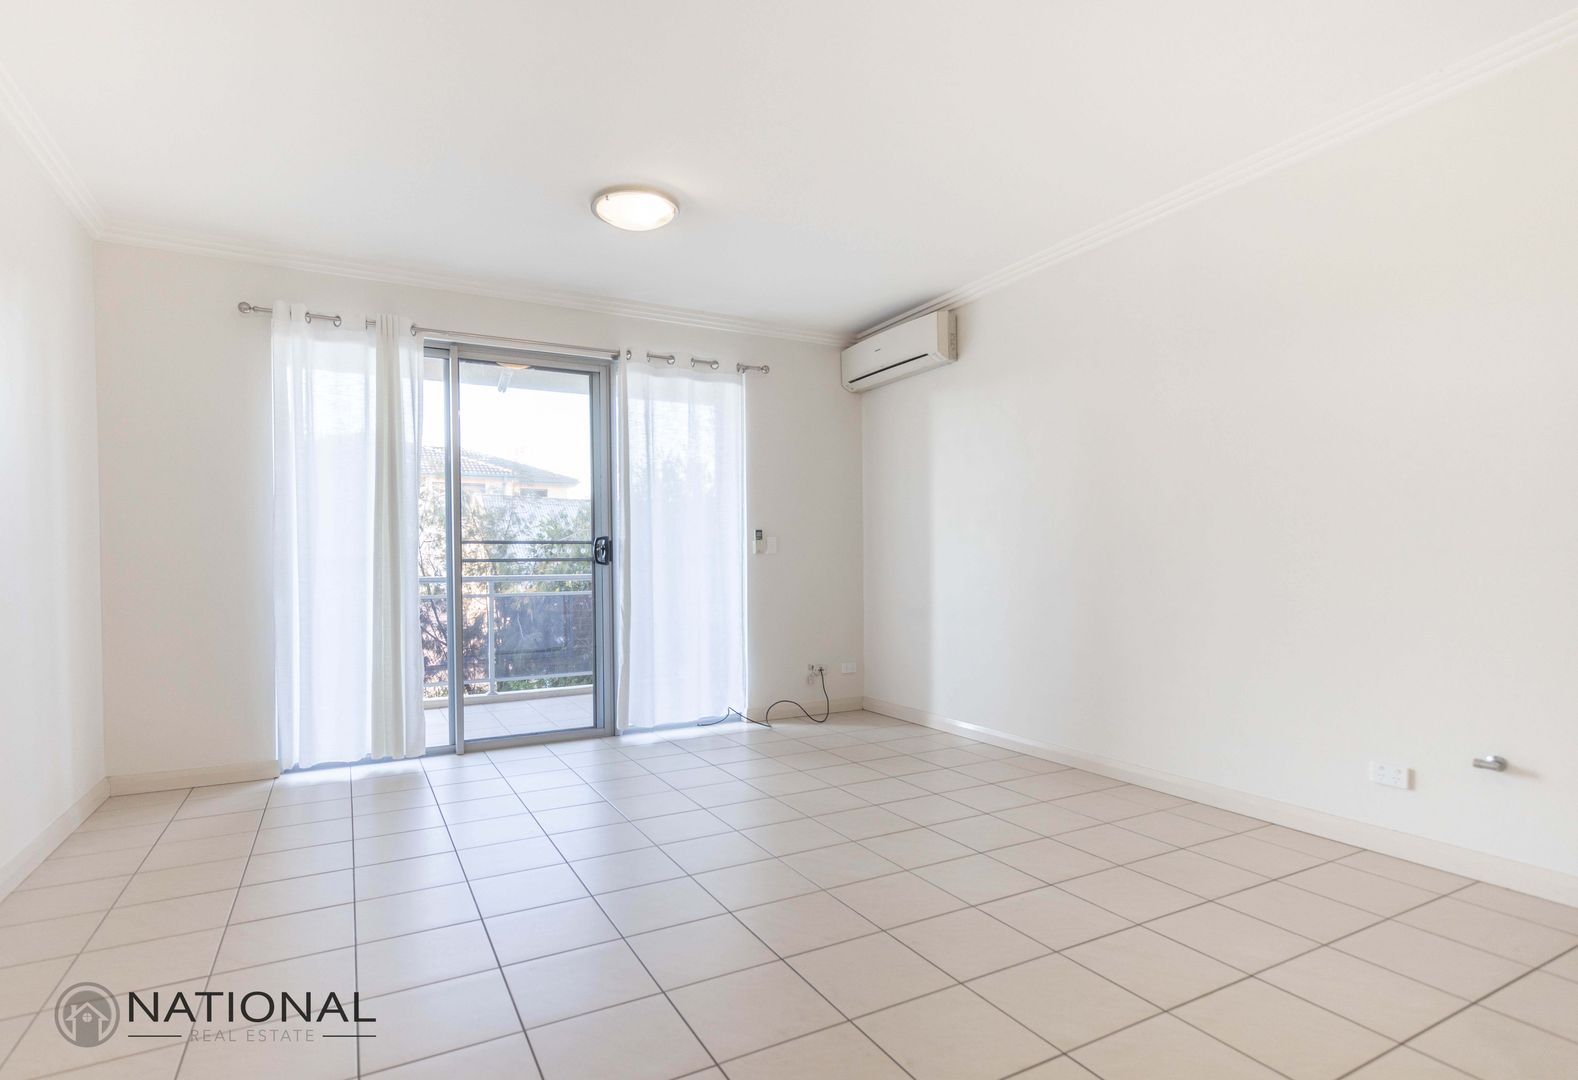 13/11-13 Cross St, Guildford NSW 2161, Image 1